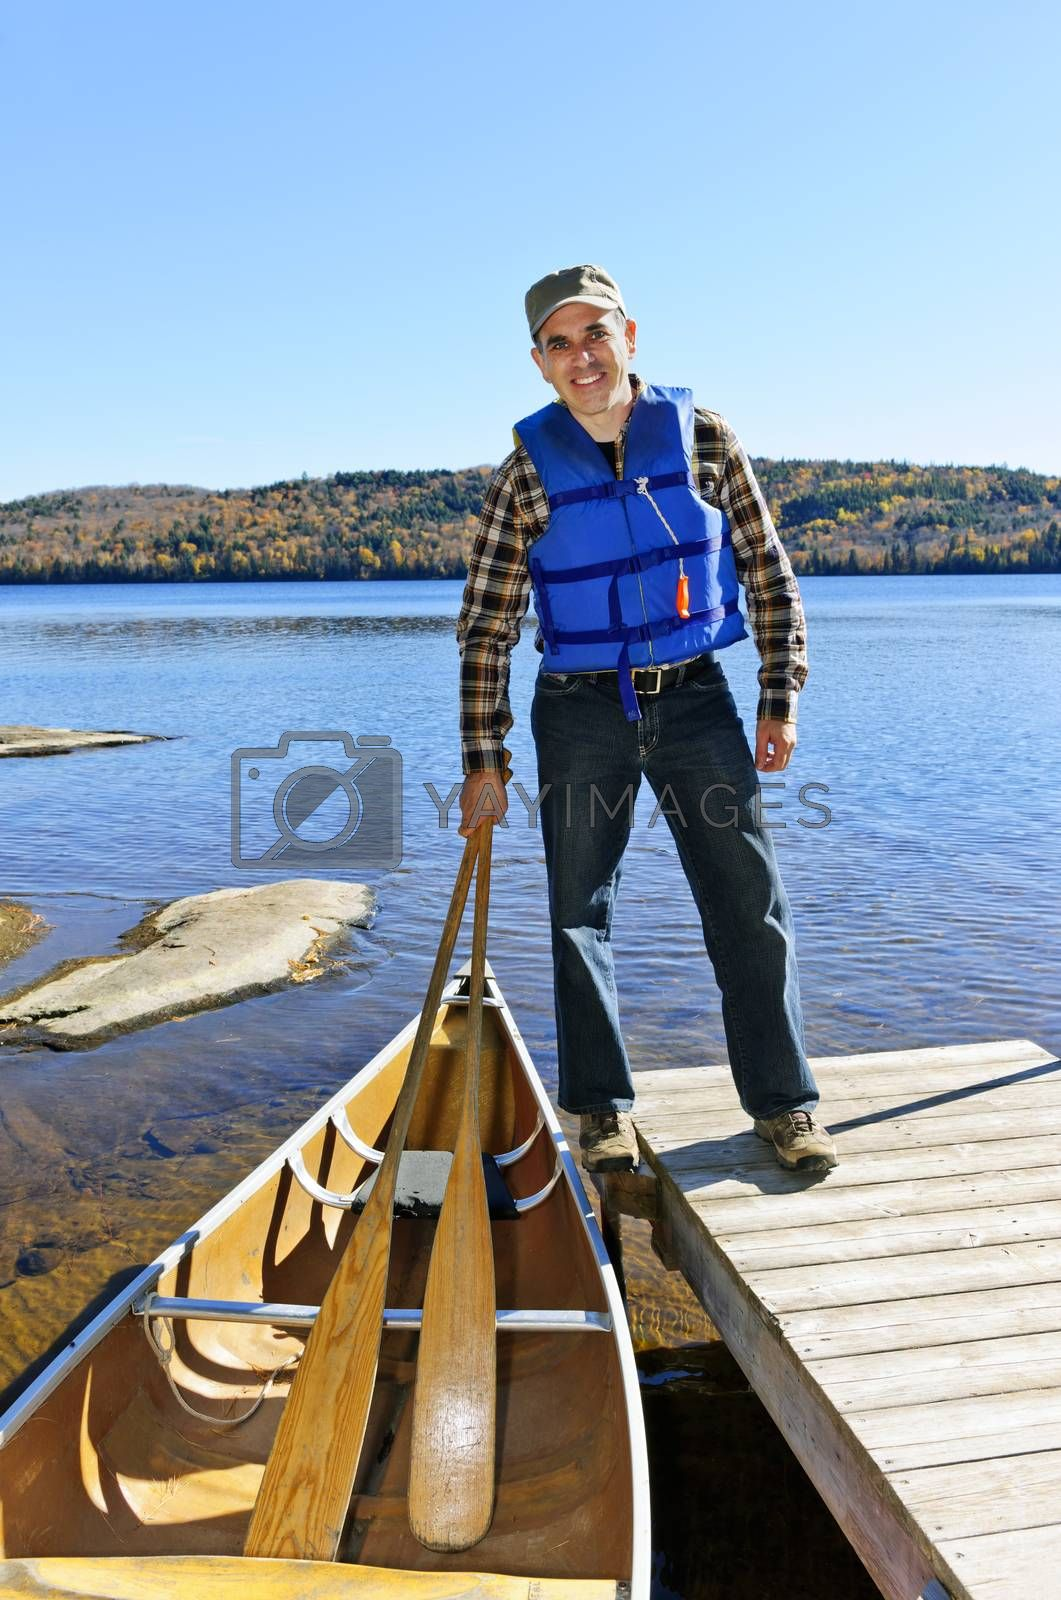 Man standing on dock with canoe on Lake of Two Rivers, Ontario, Canada